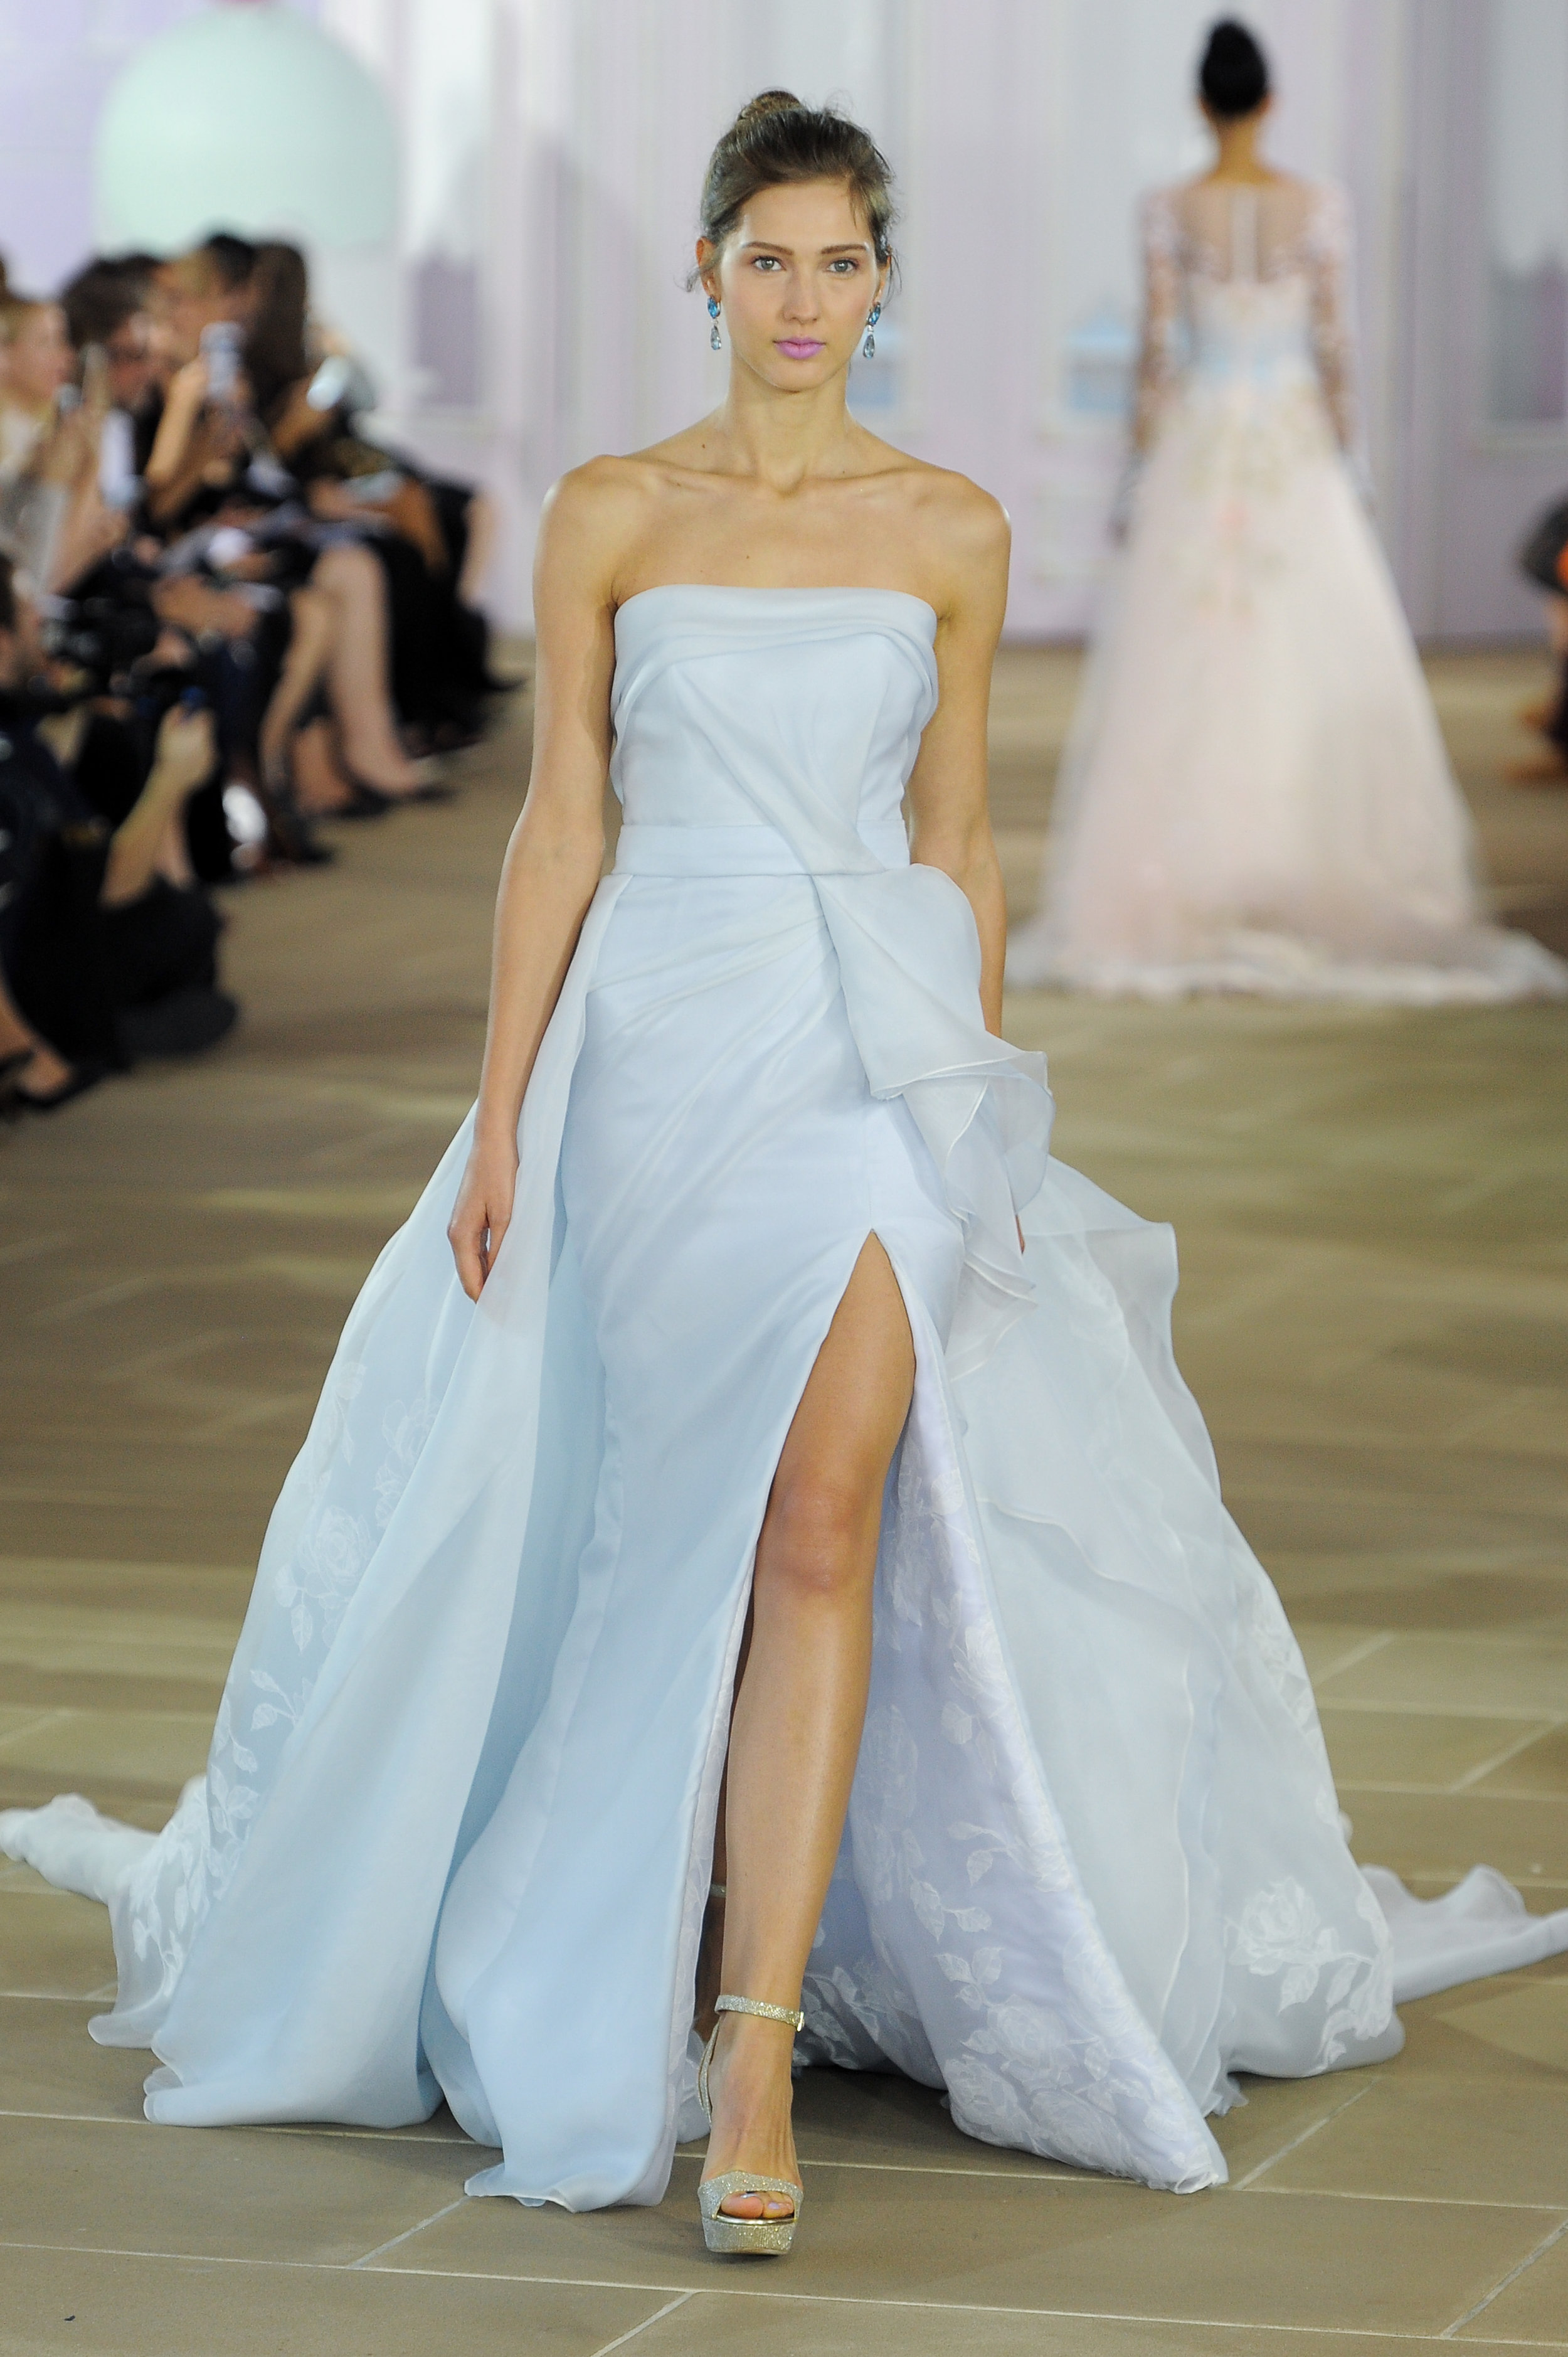 'Azure' - Asymmetrical column with drape detail at waist and painted floral organza.